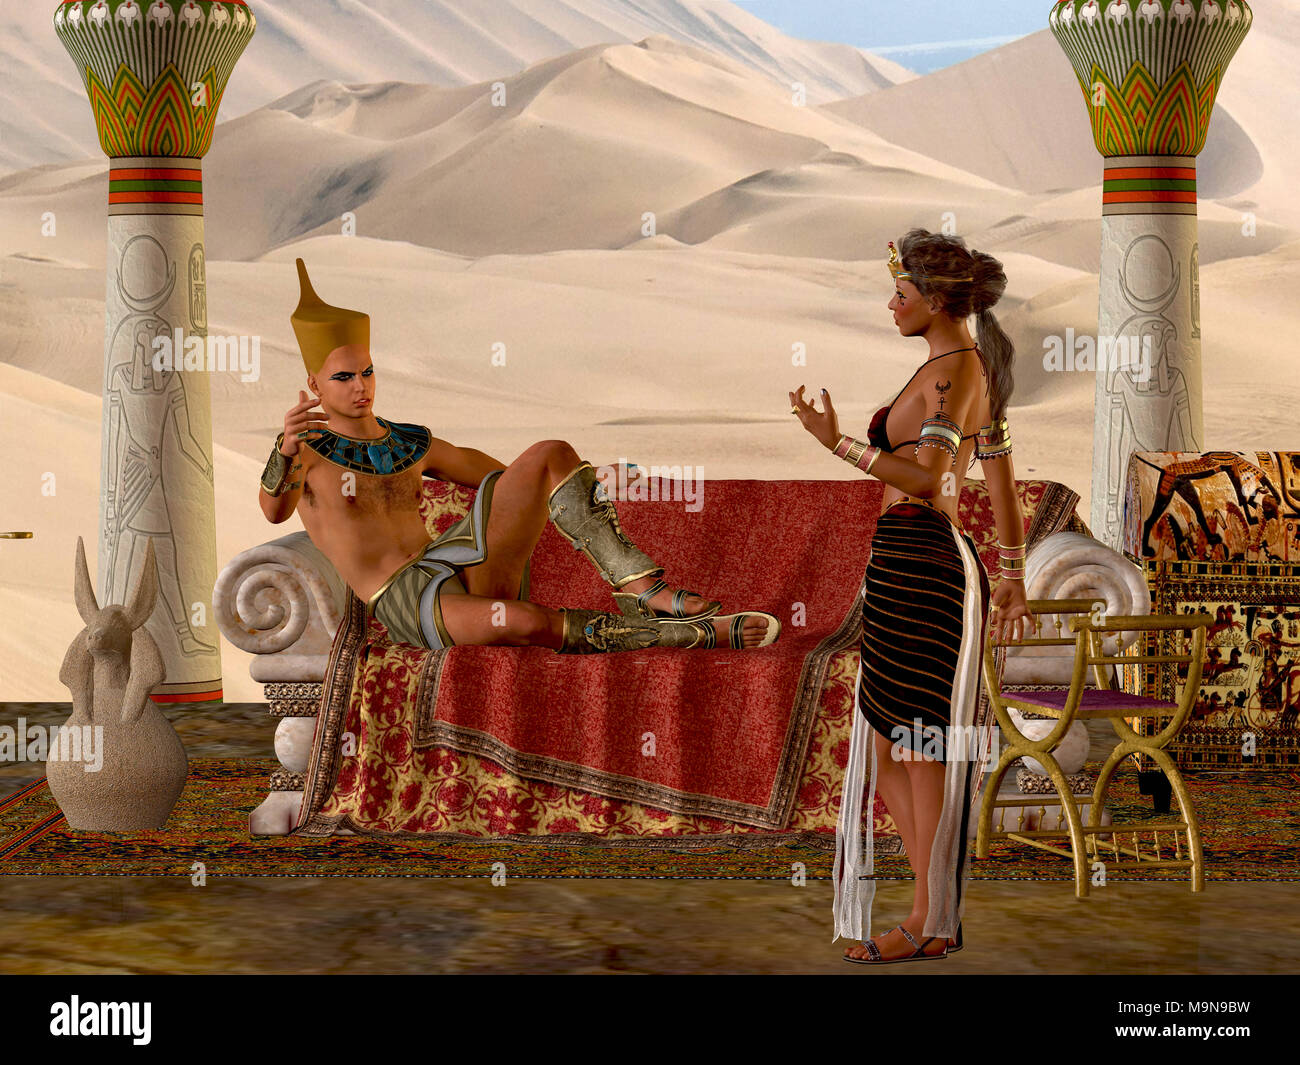 Egyptian Couple with Bench - The Egyptian Pharaoh and his wife have a discussion about everyday matters in their kingdom. - Stock Image